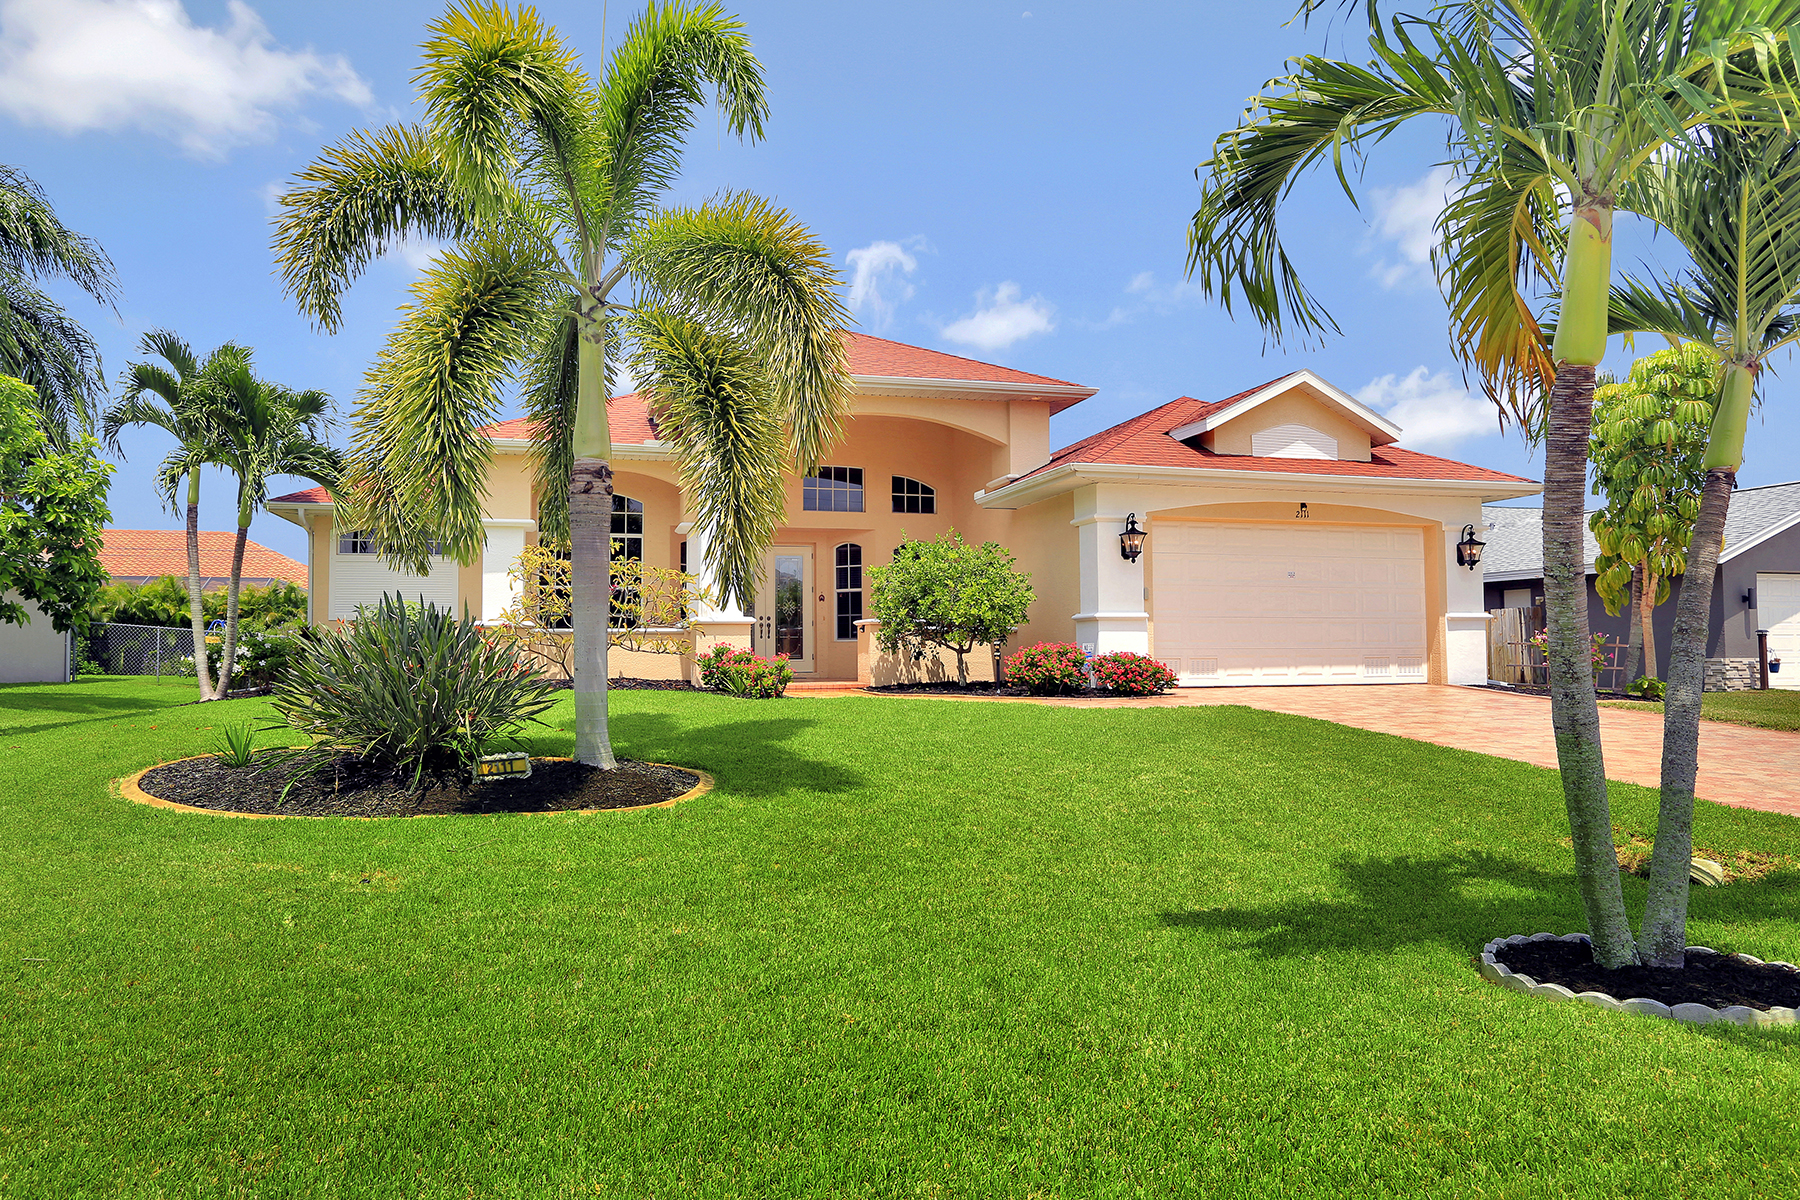 Single Family Homes for Sale at CAPE CORAL 2111 SW 49th Terrace, Cape Coral, Florida 33914 United States